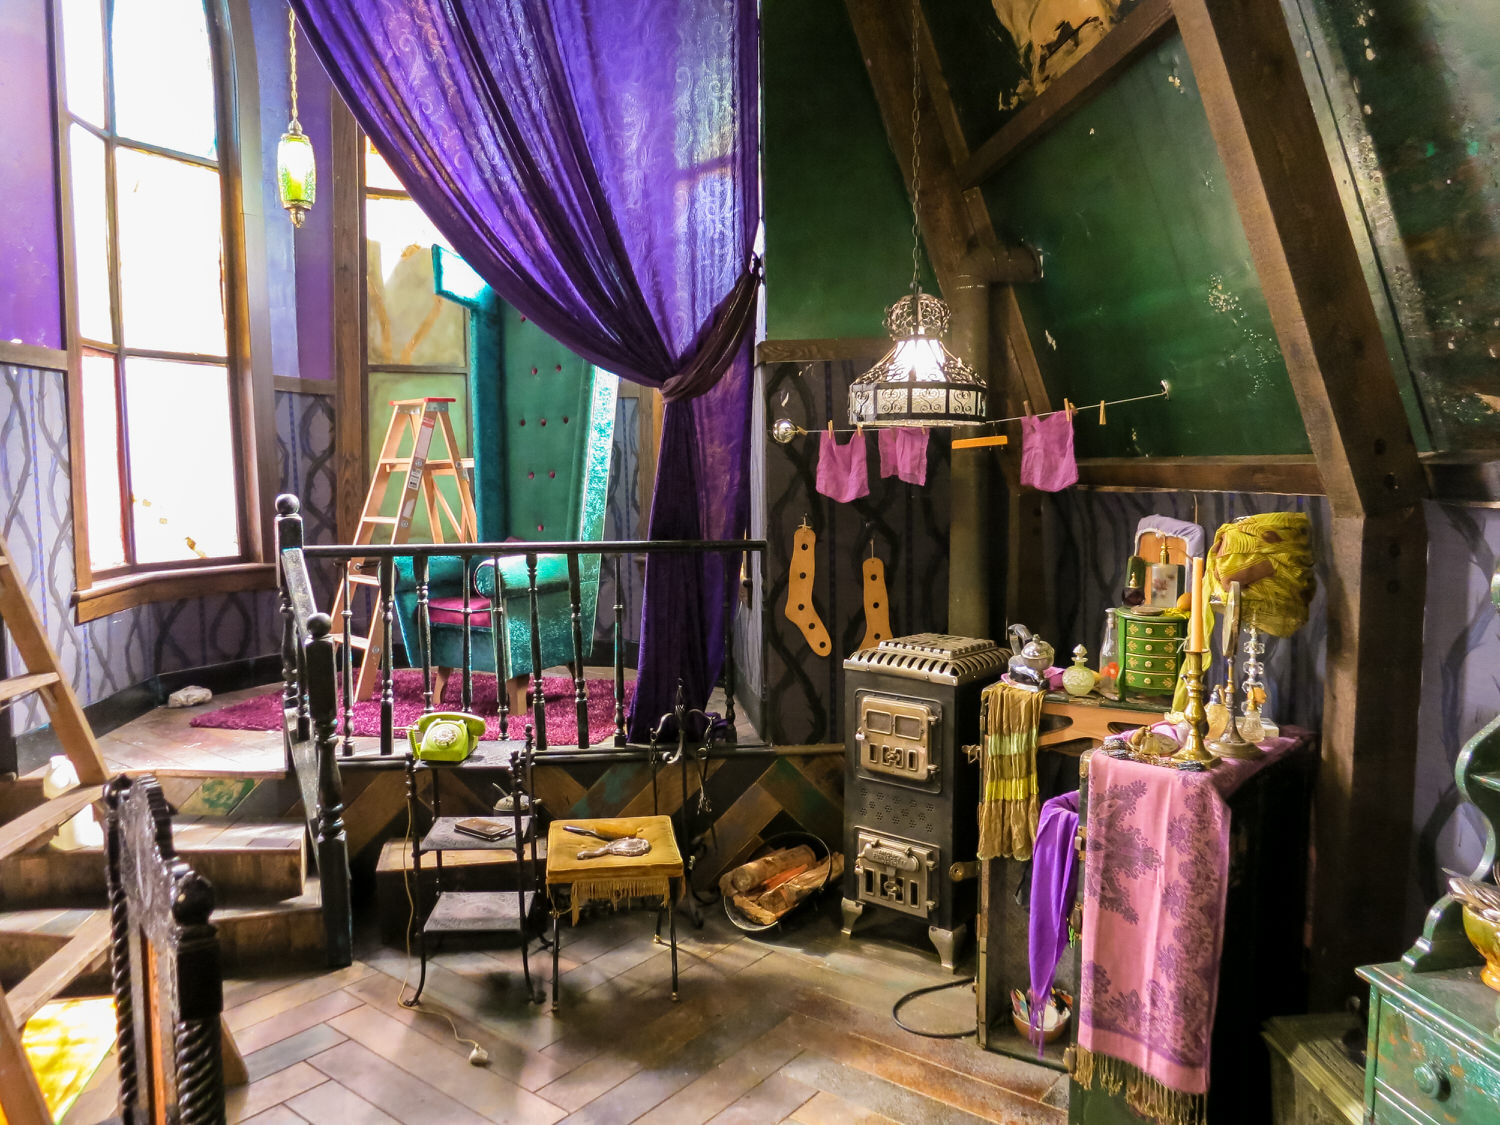 A view of Maleficent's dressing area and her elevated throne. Domesticity is not among her considerable powers.